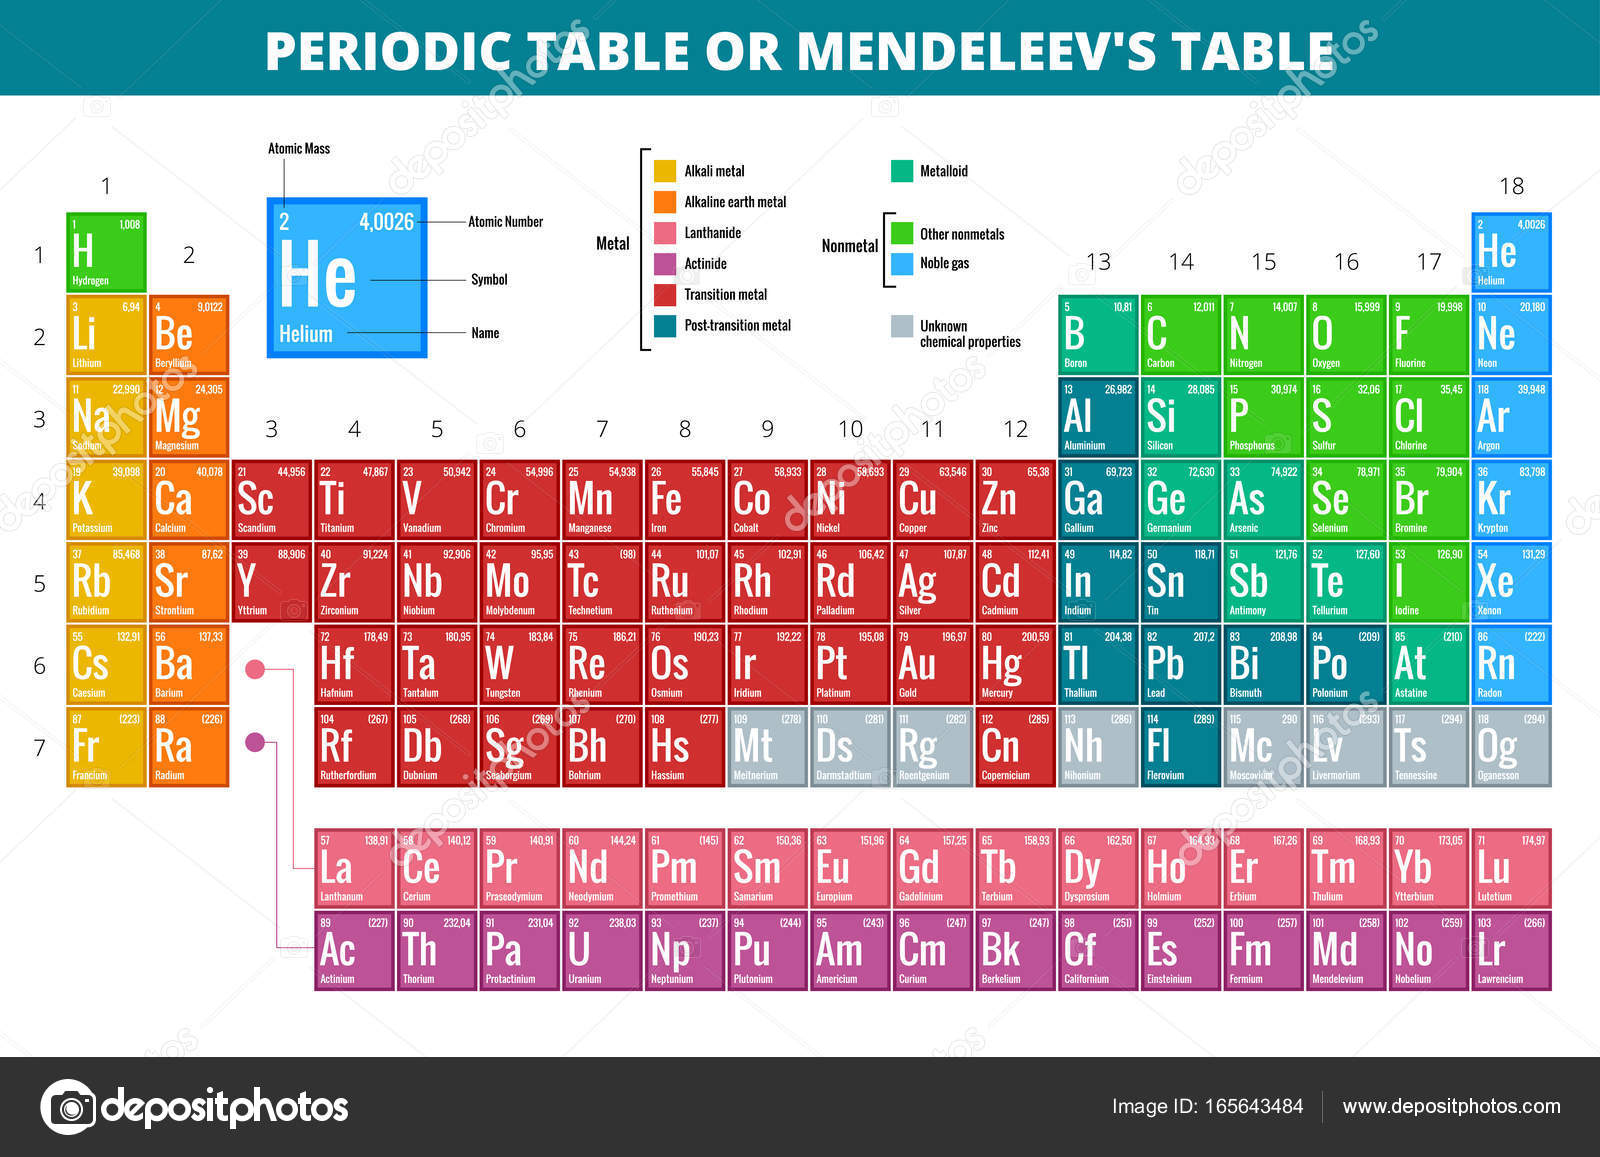 Mendeleevs periodic table of elements vector illustration stock mendeleevs periodic table of elements vector illustration stock vector urtaz Choice Image